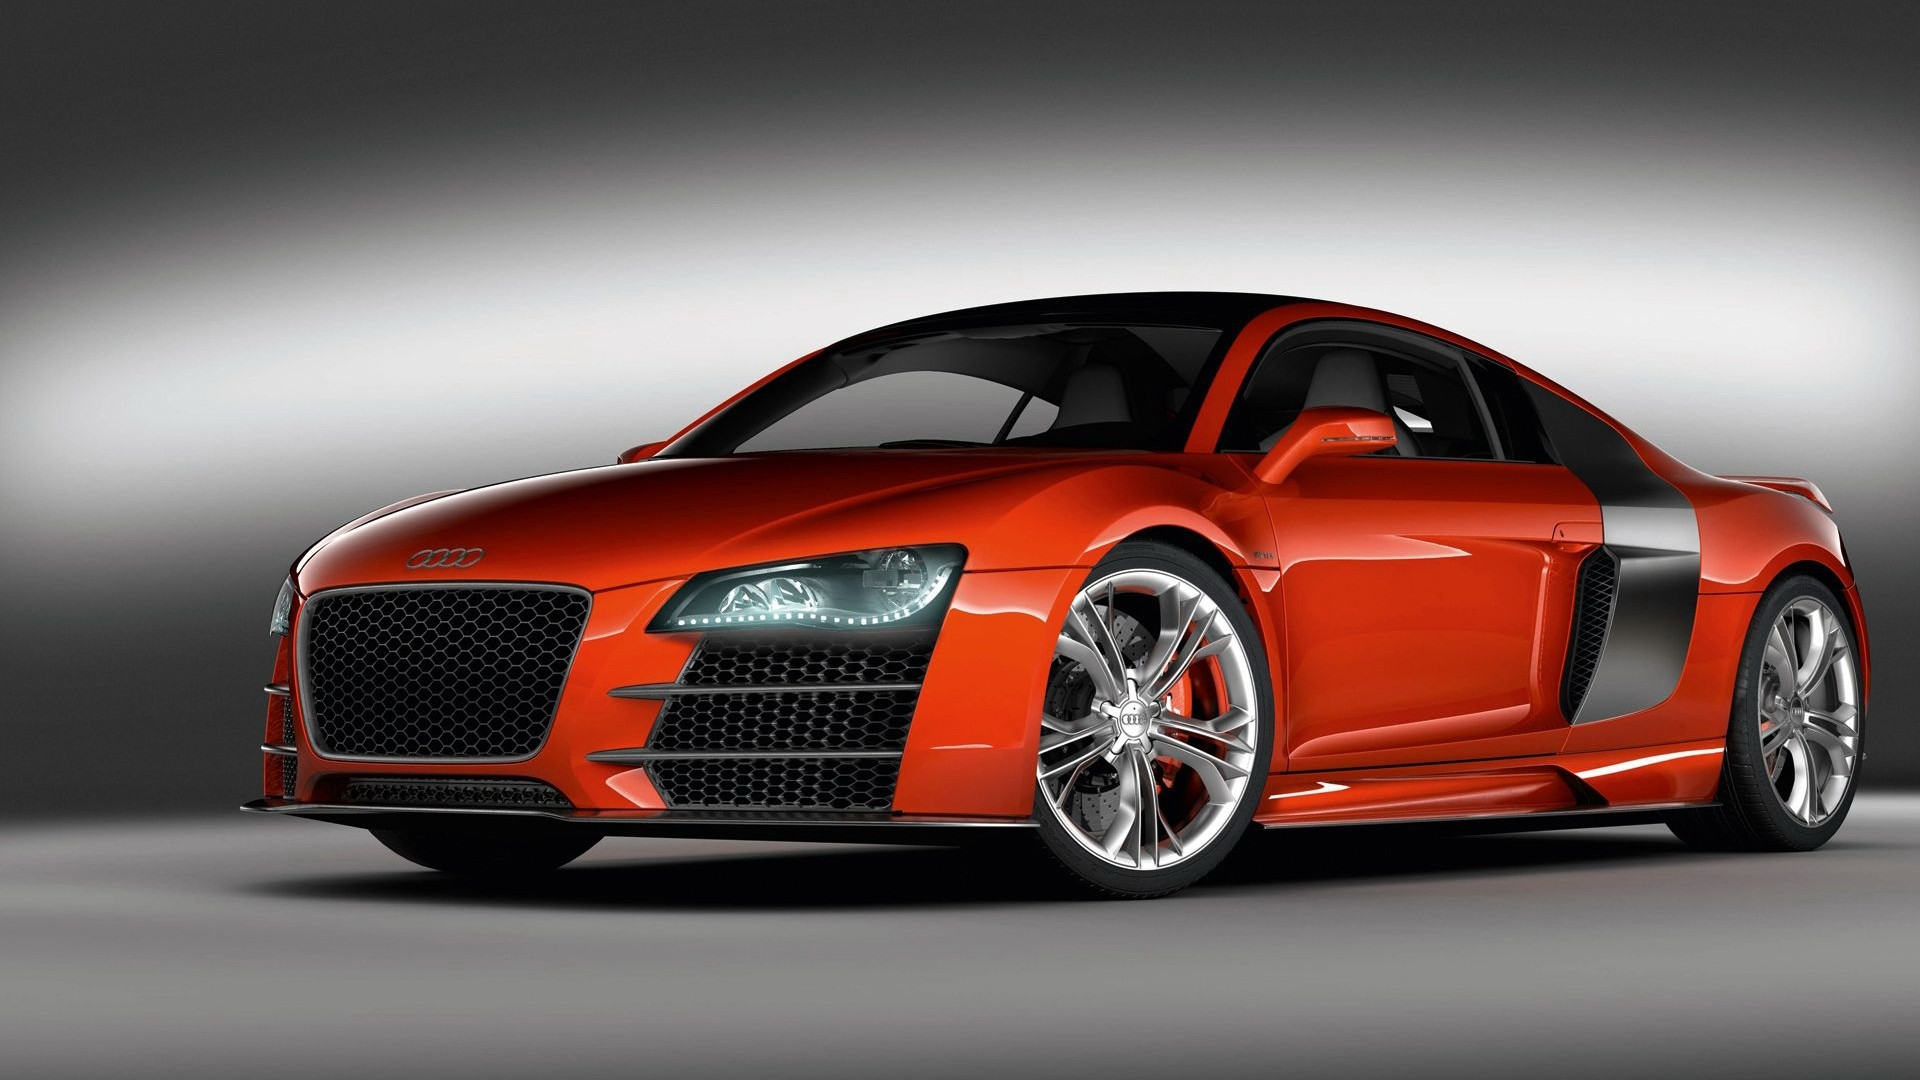 Audi R8 Hd Widescreen Wallpapers 1080p Audi R8 1080p Wallpapers Hd Wallpapers Id 1034